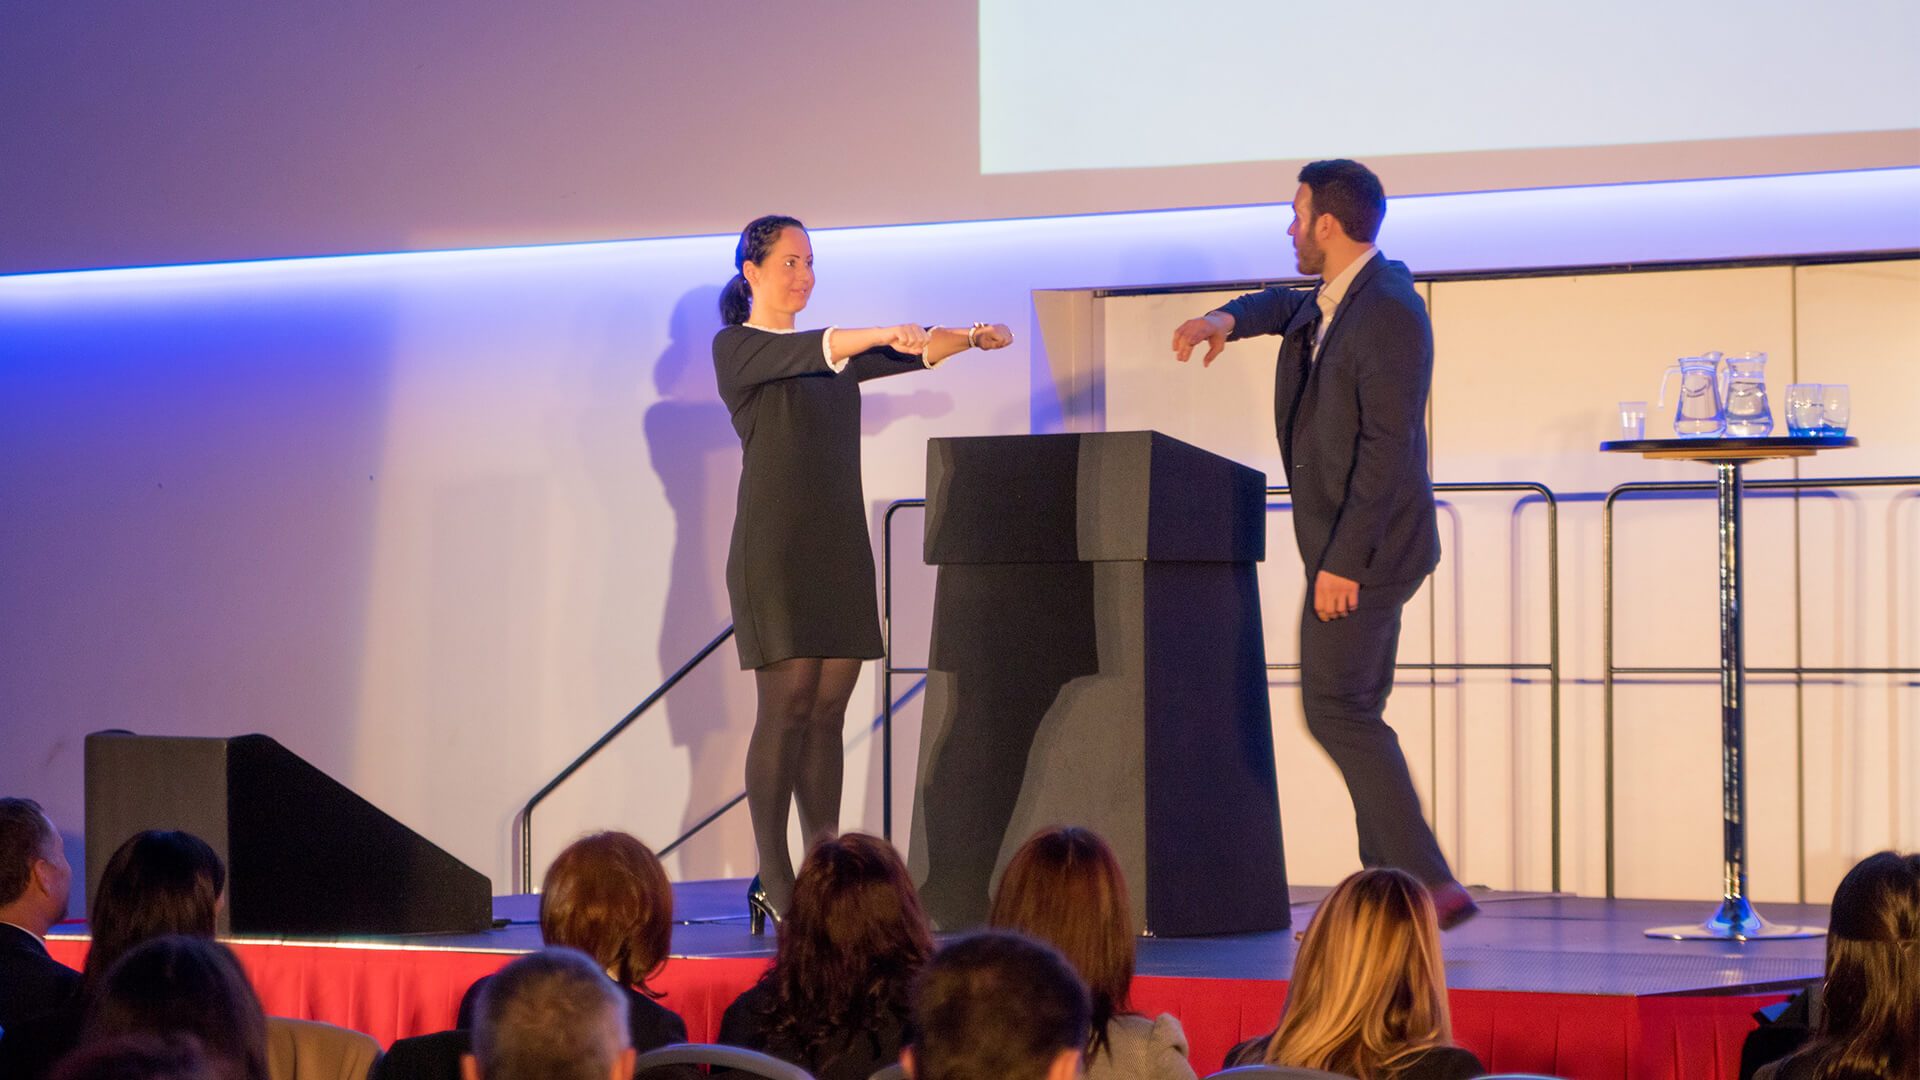 Aaron demonstrating the psychology of business on stage at Corporate event as Manchester magician